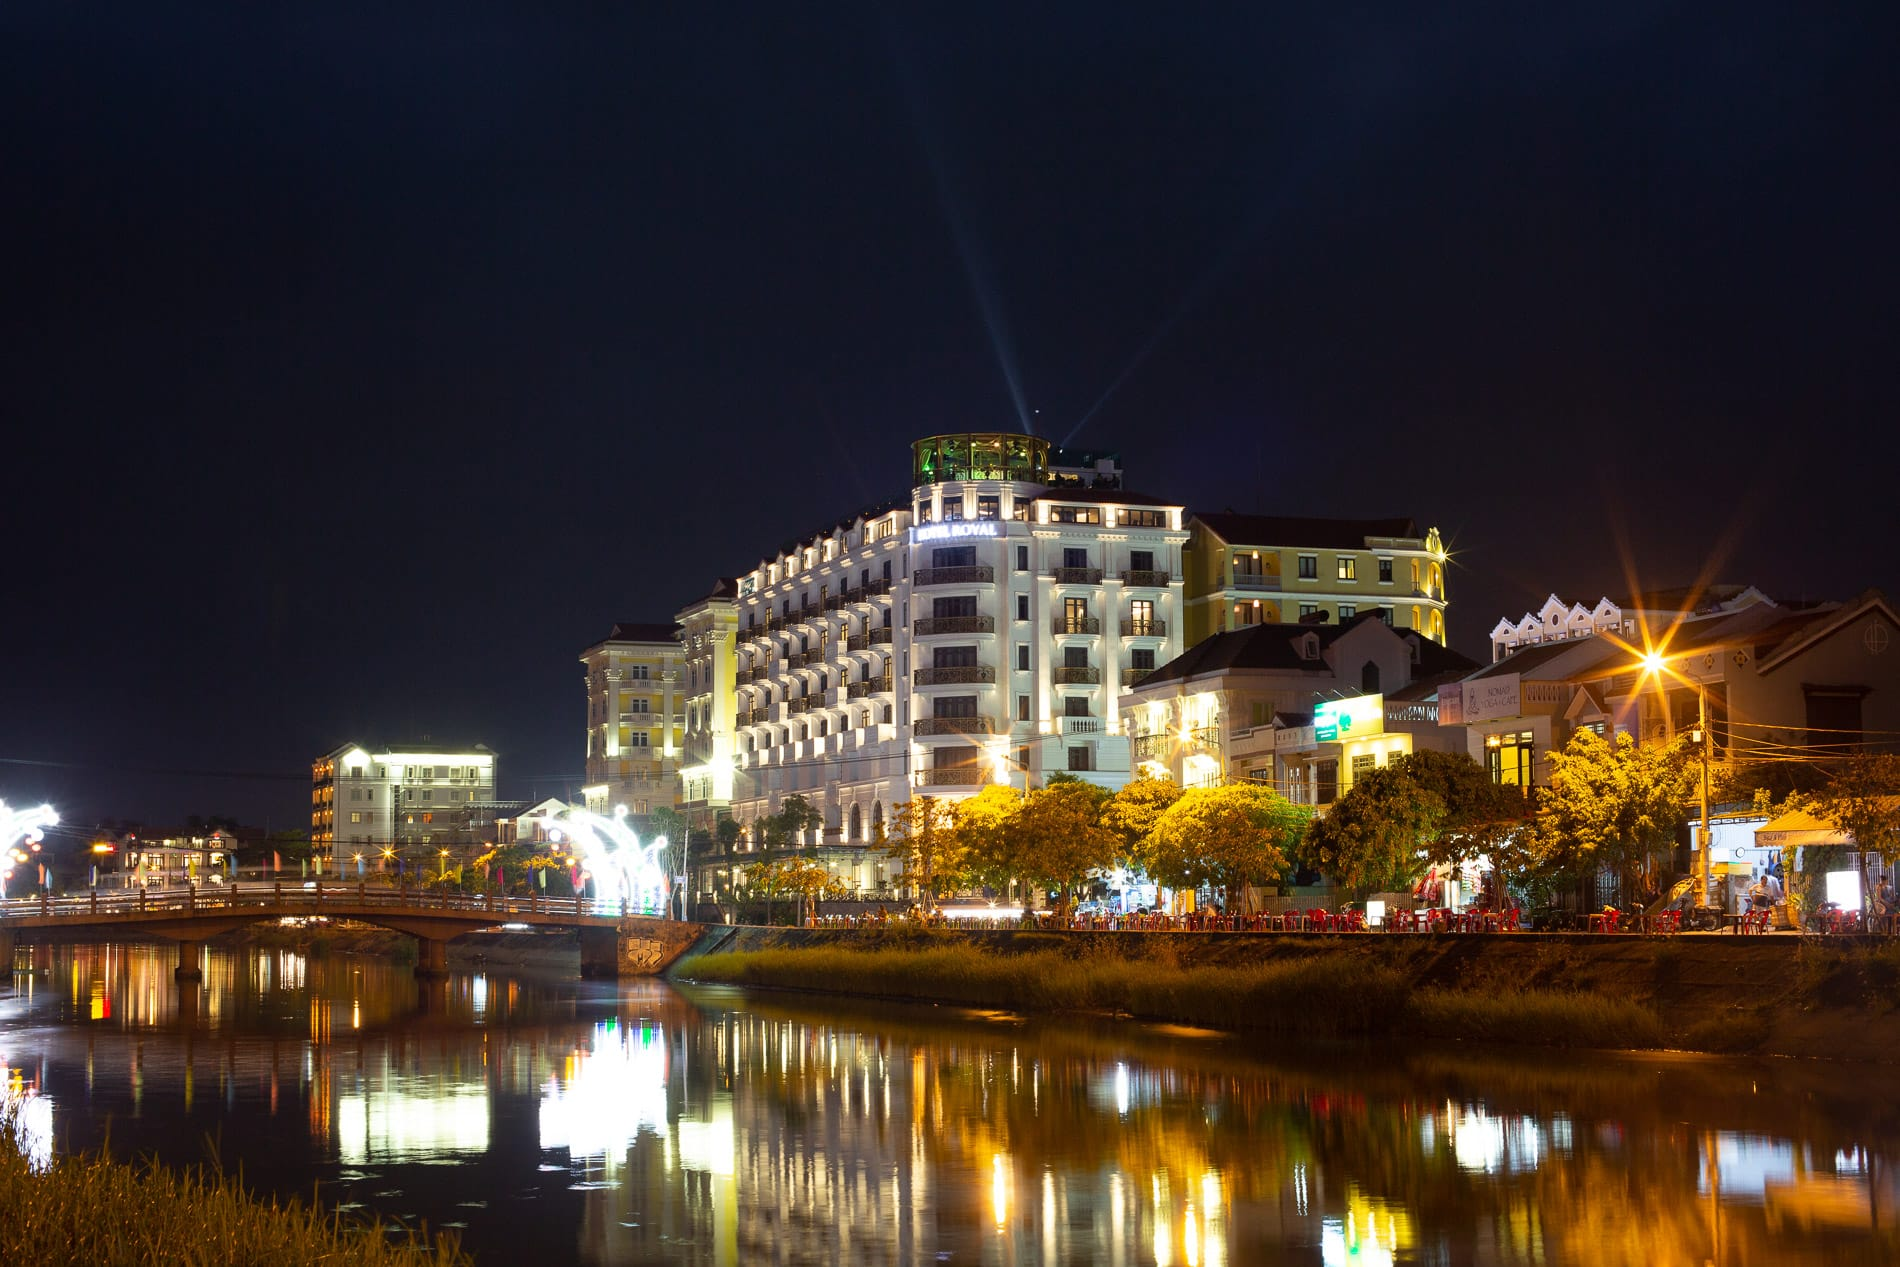 Night view of Hotel Royal Hoi An